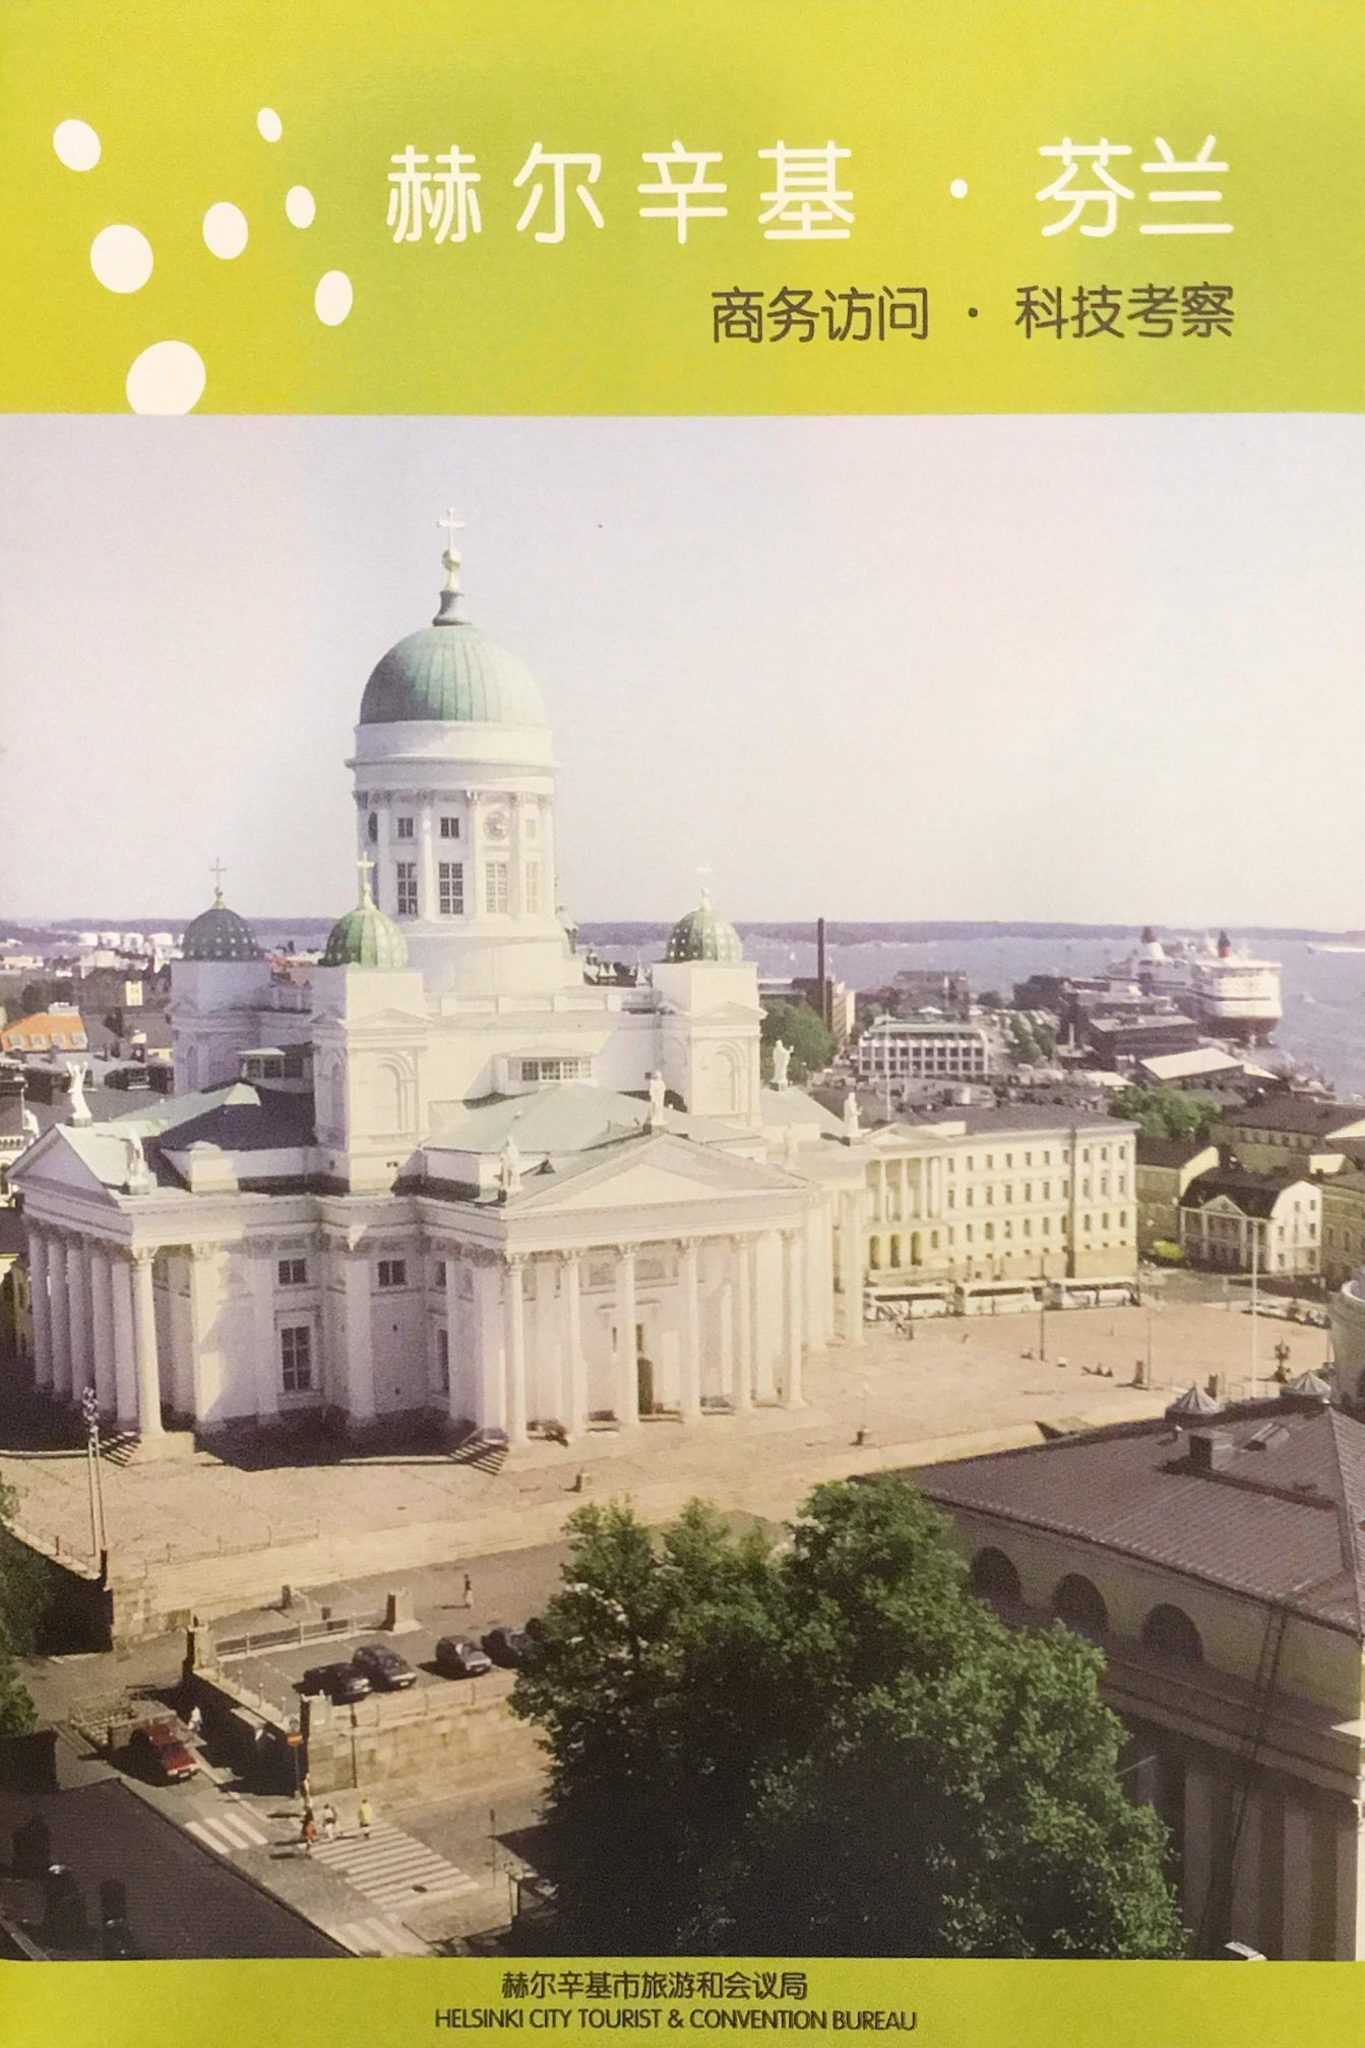 tekway-helsinki-city-travel-guide-10-e1585126244798-1343x2048